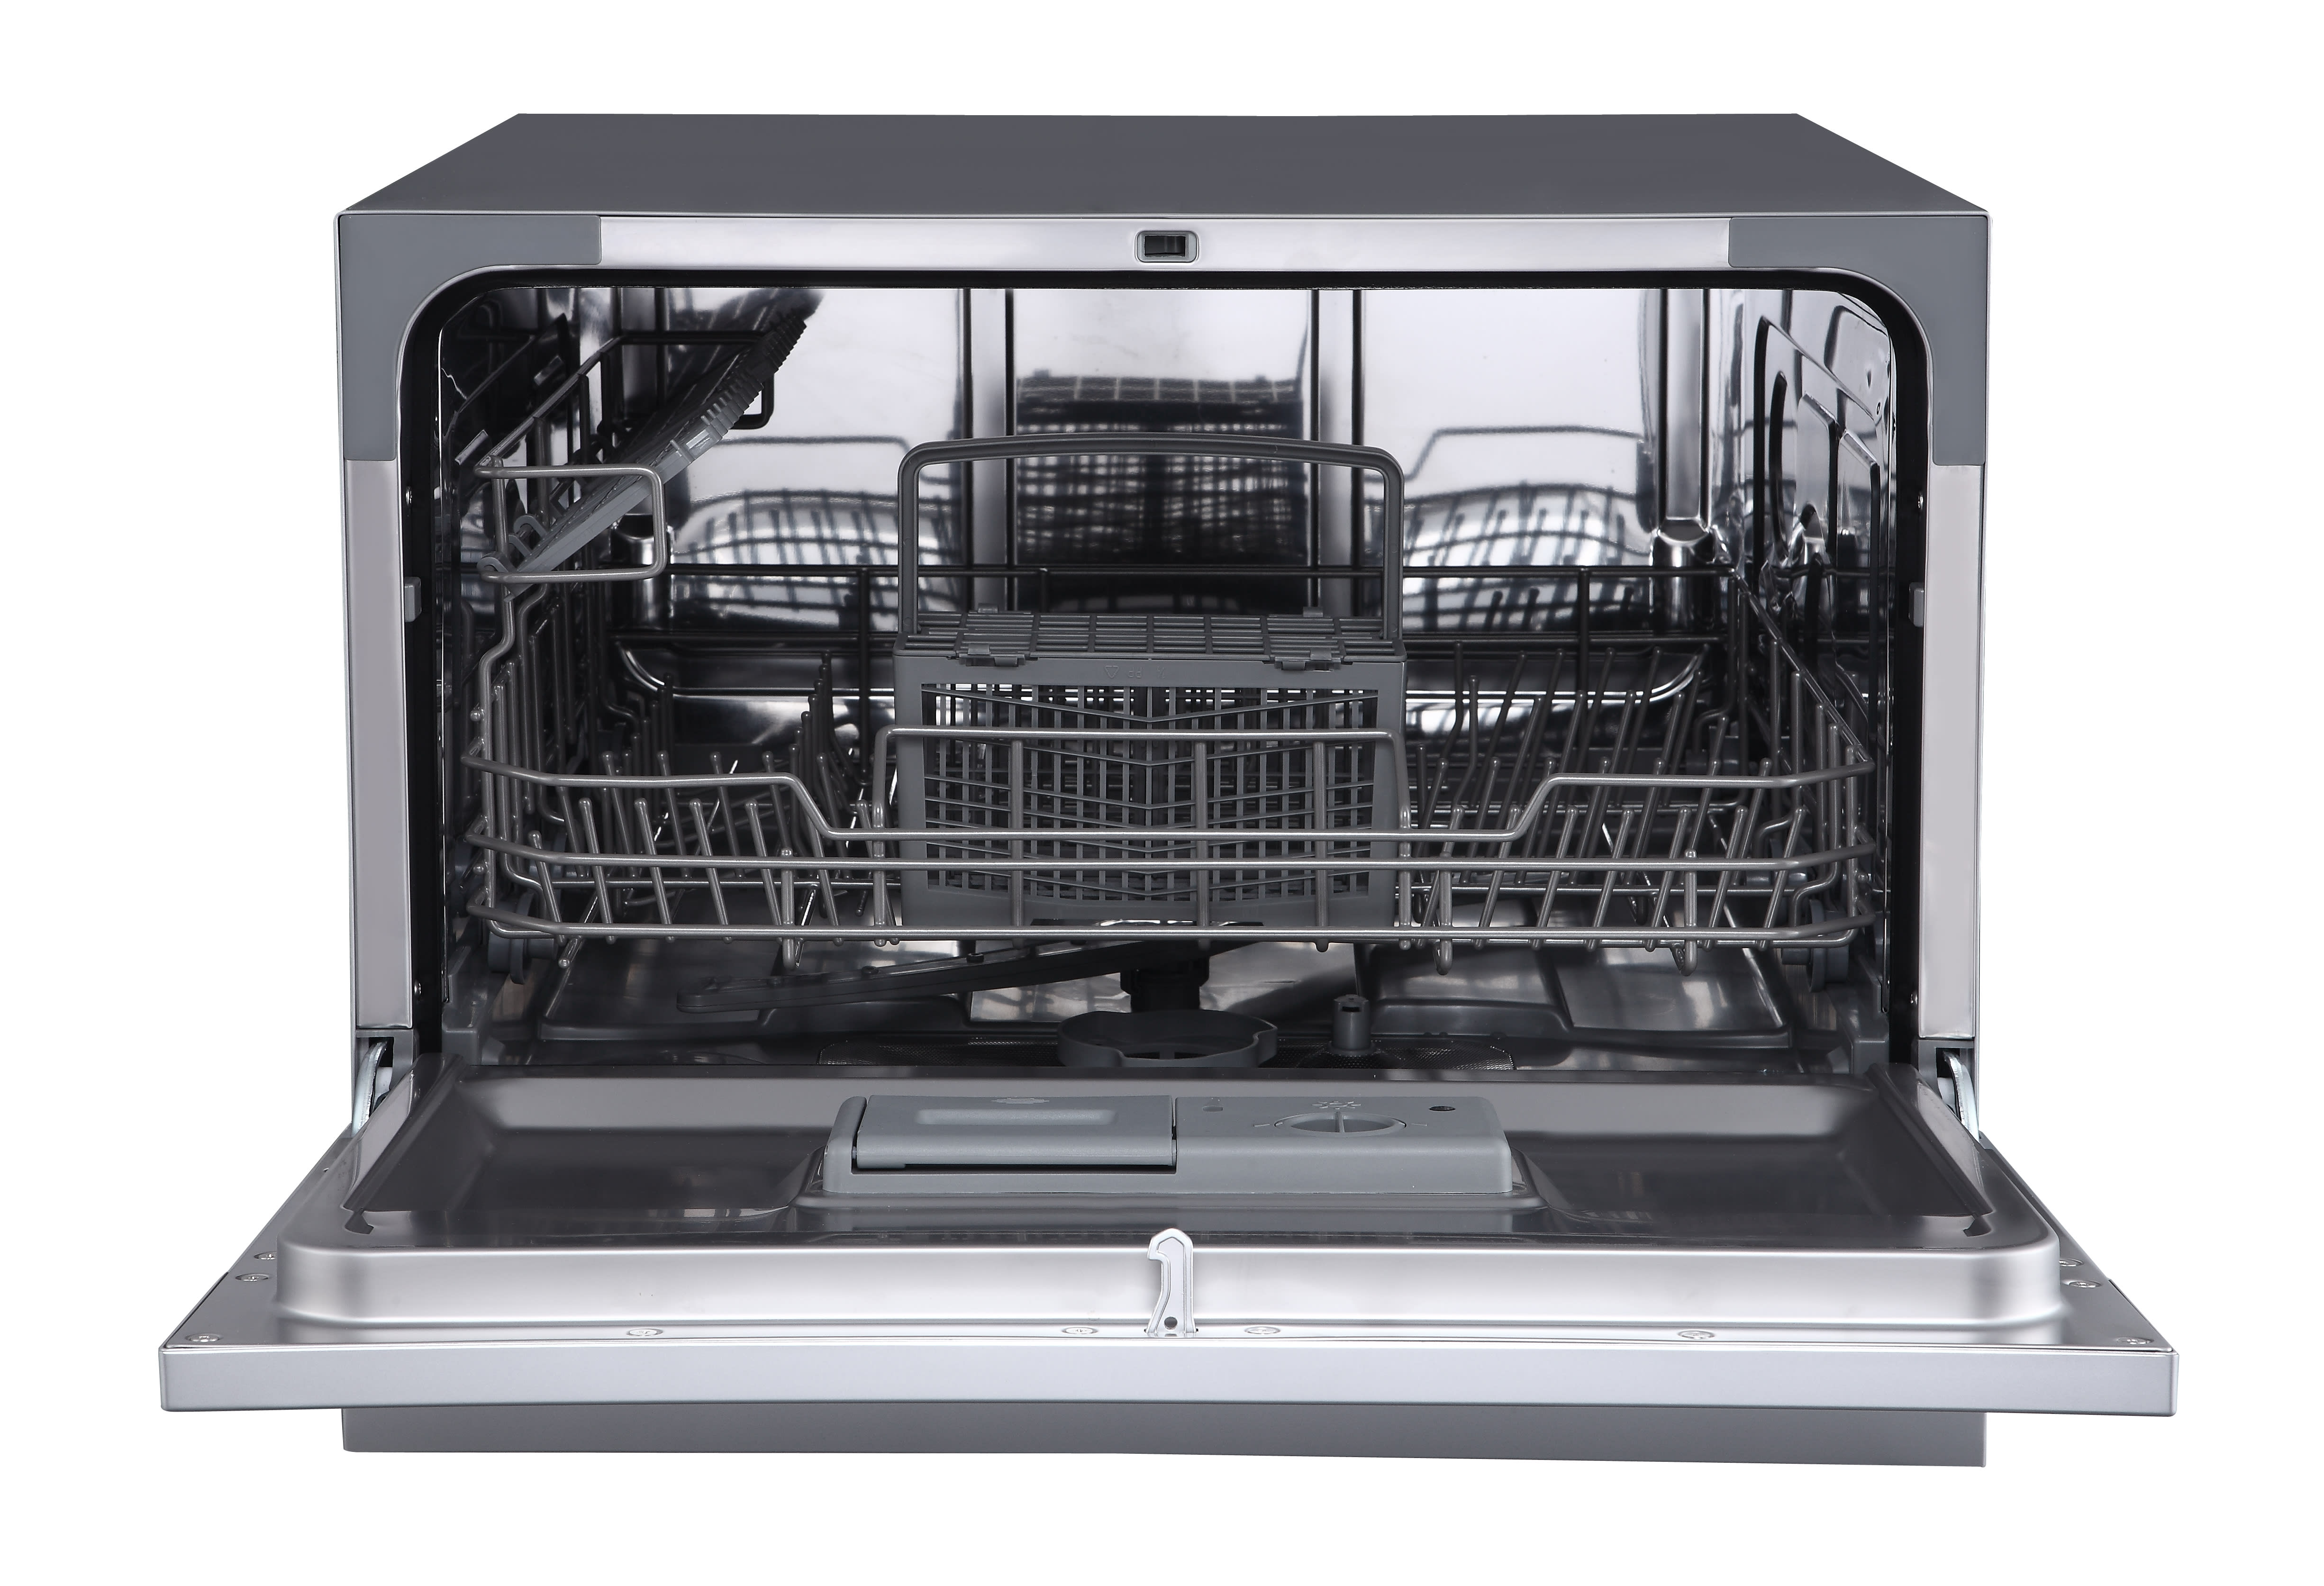 cgi hour countertop ajmadison console front dry rack bin high wash rinse full top temperature removable with dishwasher heat reviews whirlpool aid delay